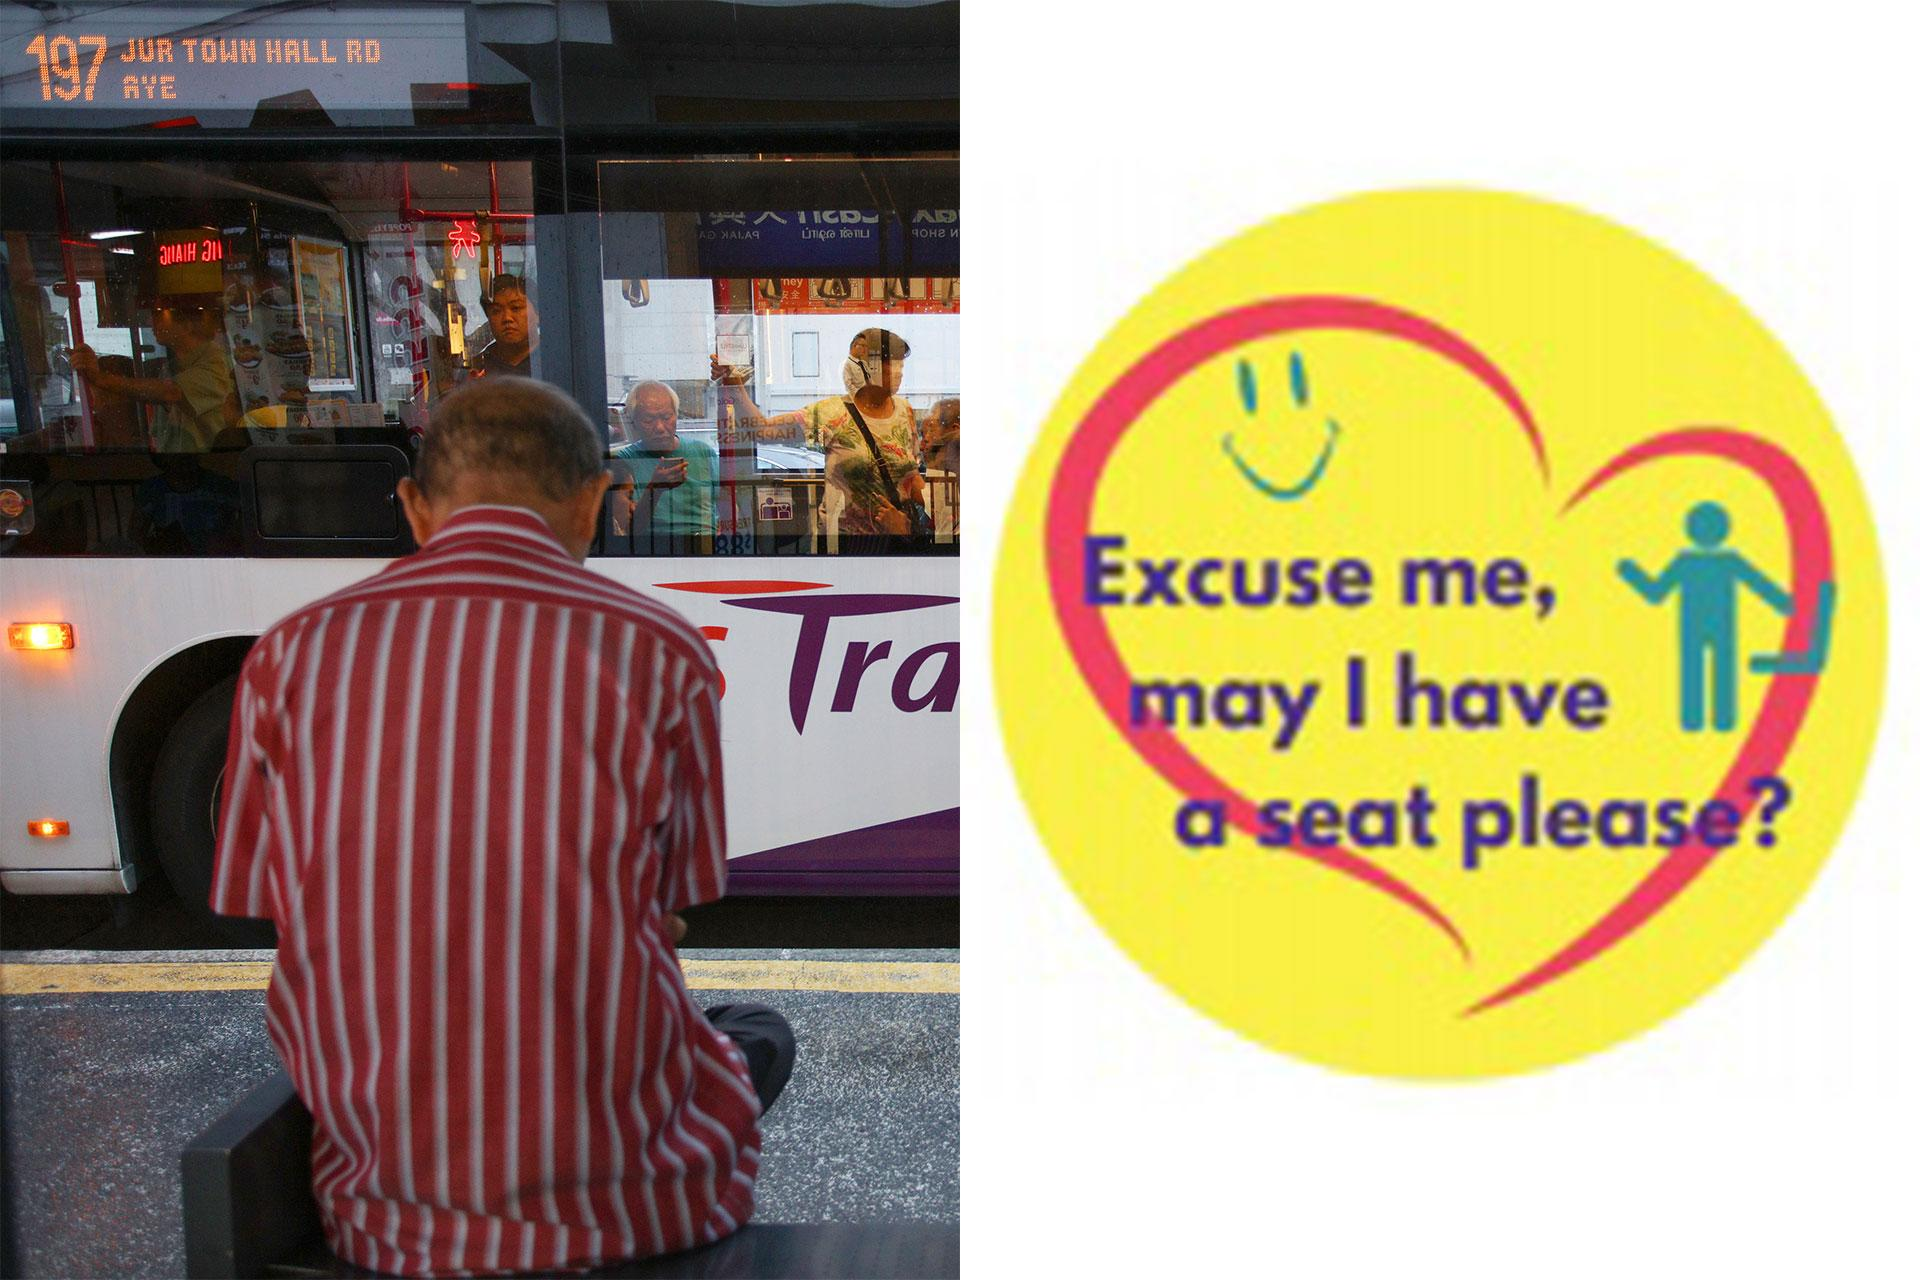 LTA launches pilot sticker scheme to help commuters with invisible medical conditions get seats